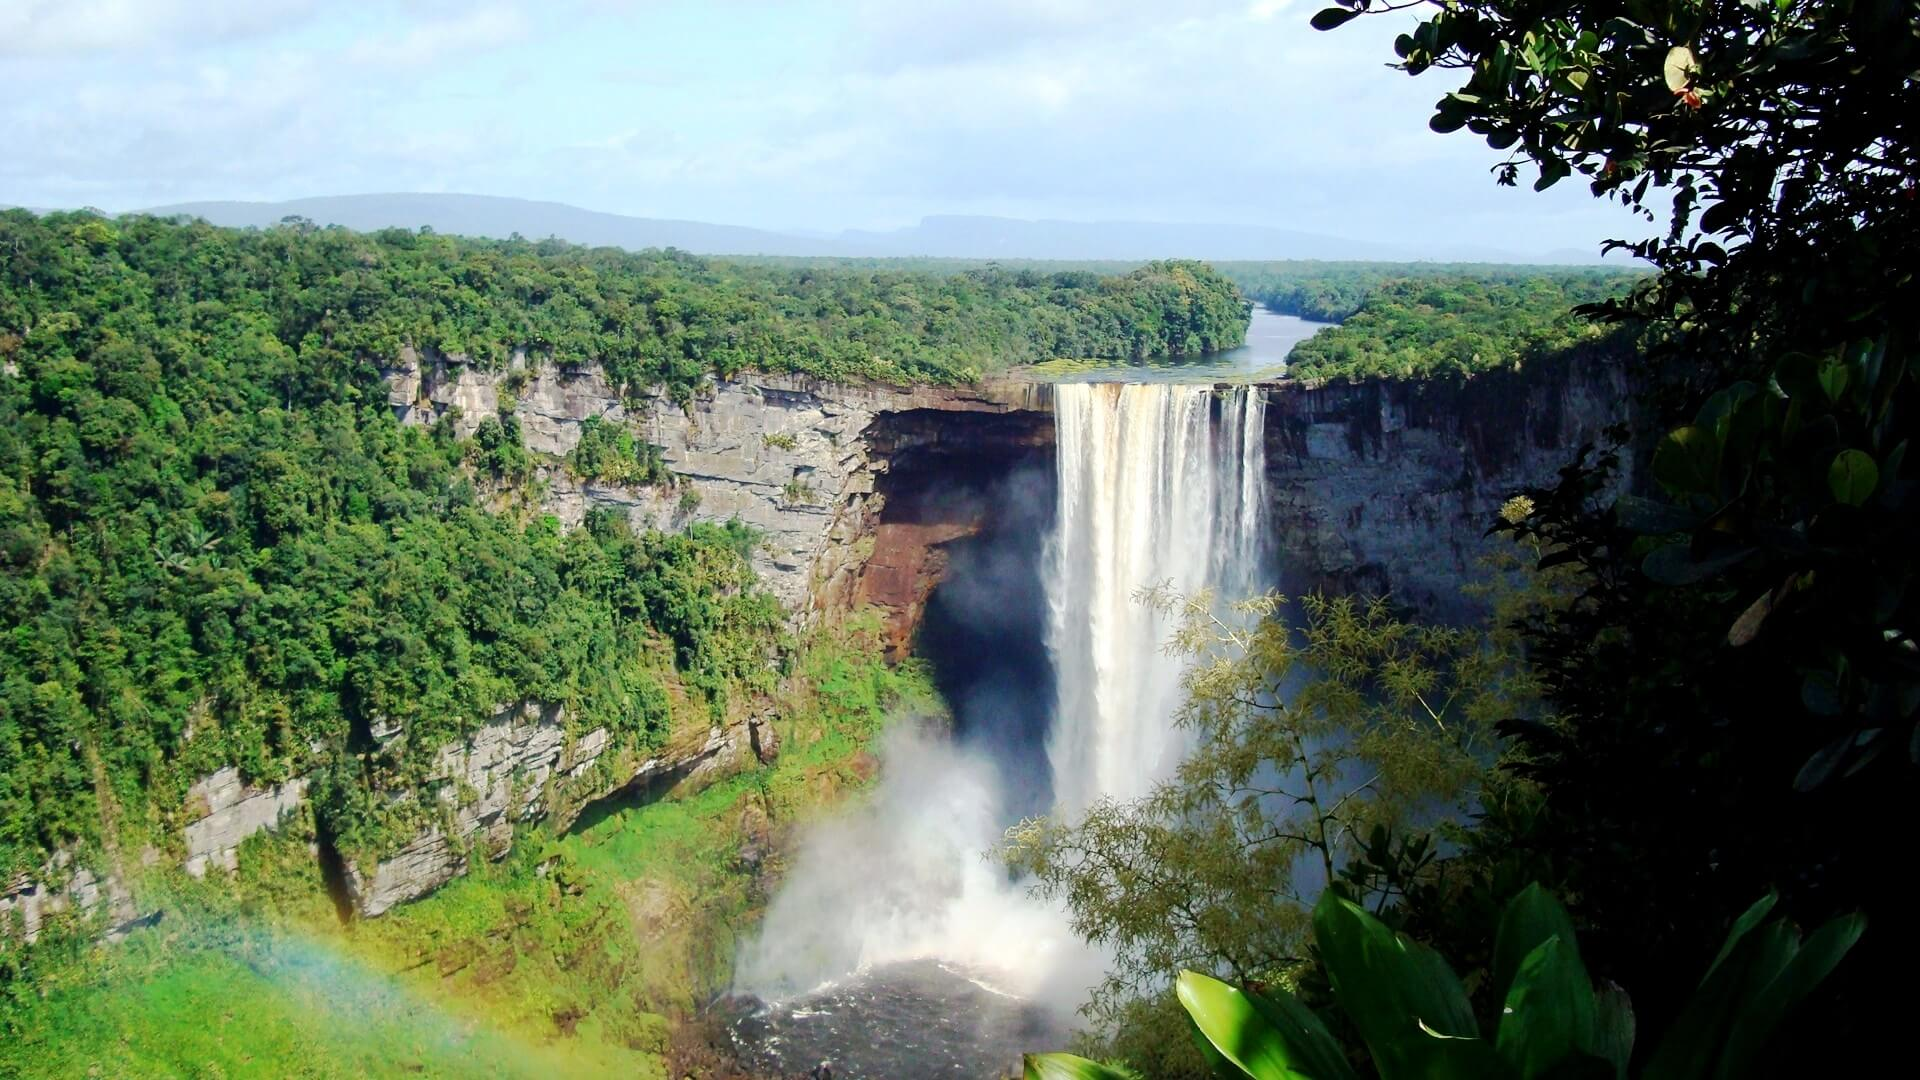 SUMMER: Washington DC to Guyana for only $418 roundtrip (May-Feb dates)